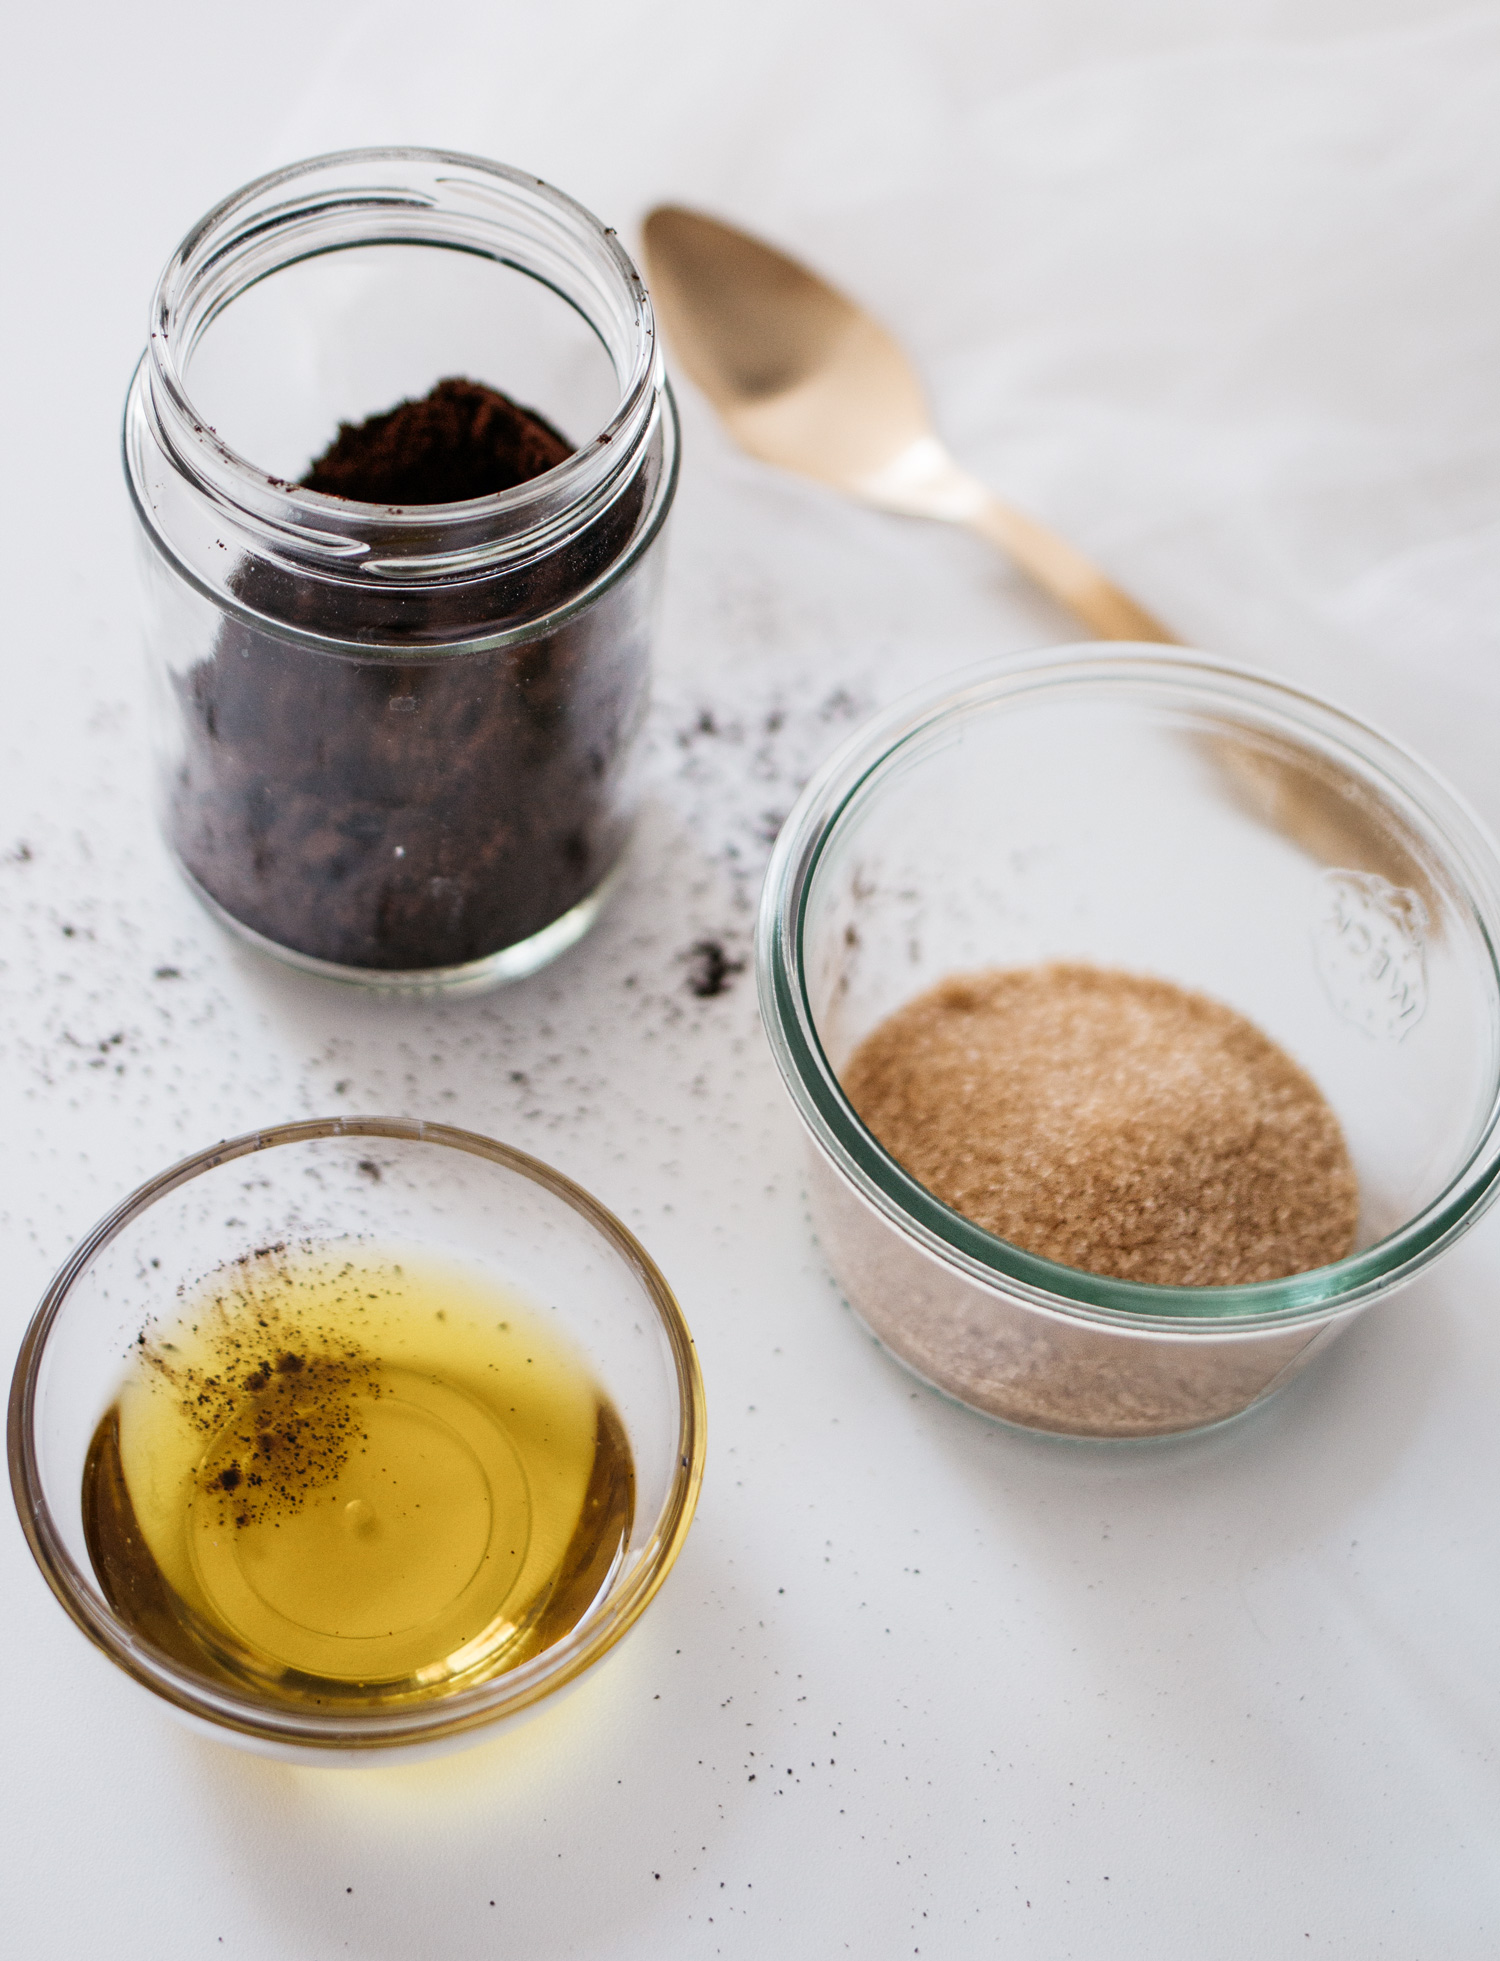 diy: coffee scrub | how to do your own body peeling against cellulite | homemade